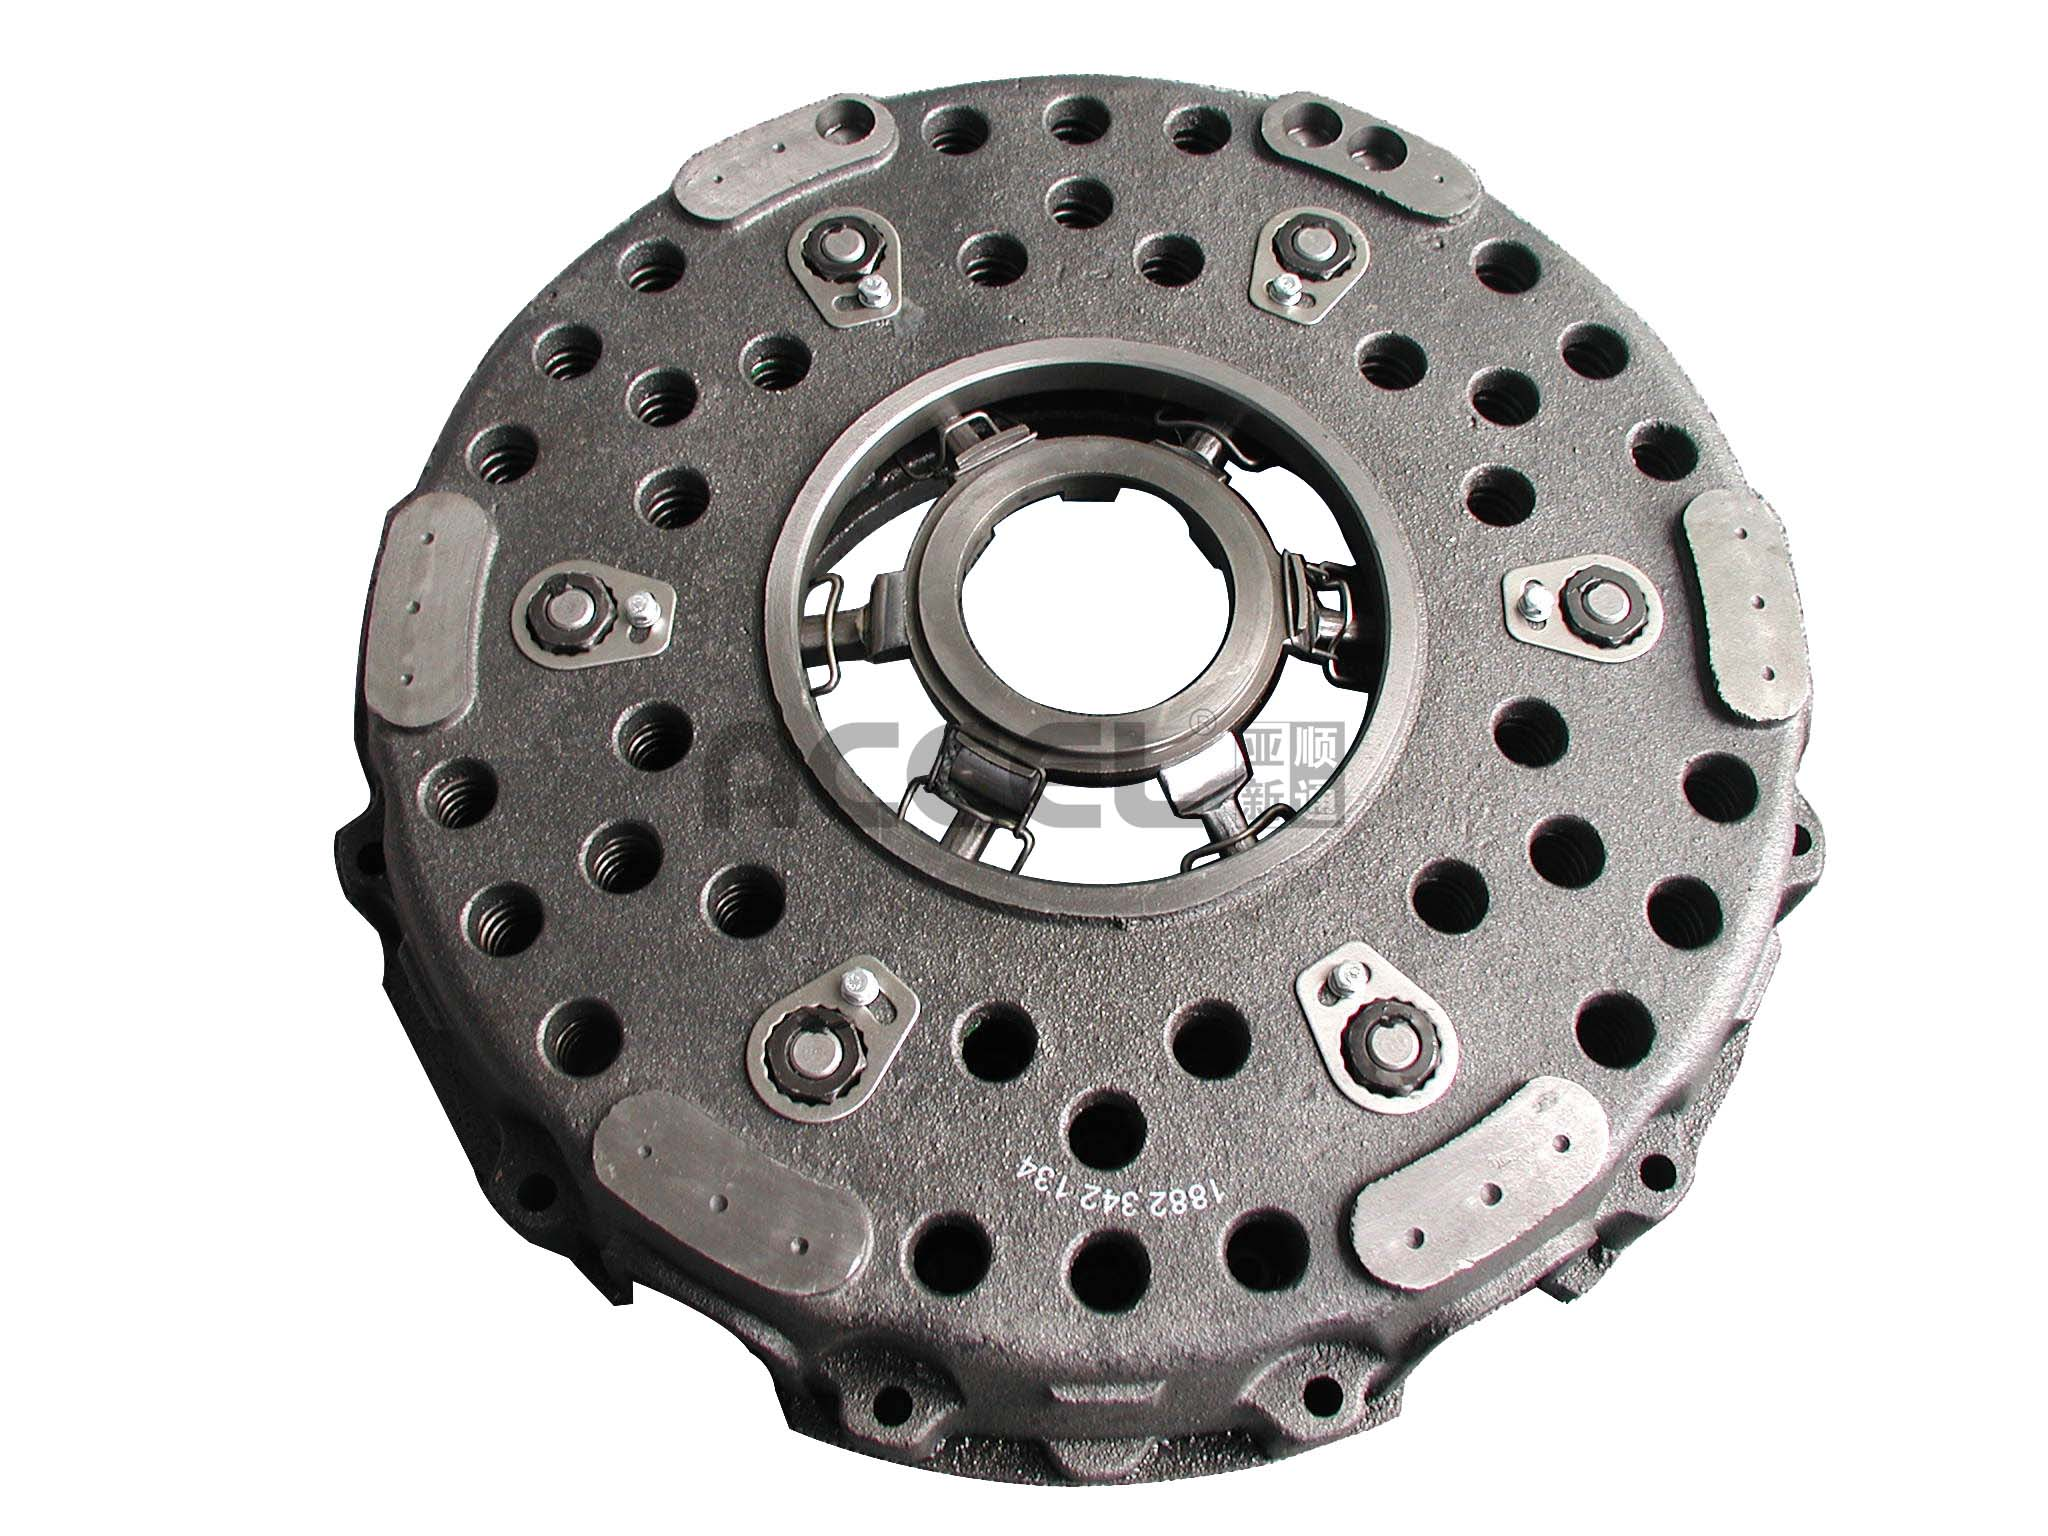 Clutch Cover/OE:1882 342 134/420*215*450/CMN-001/MAN/LY189/3600663/81.30305.0124/003 250 9004